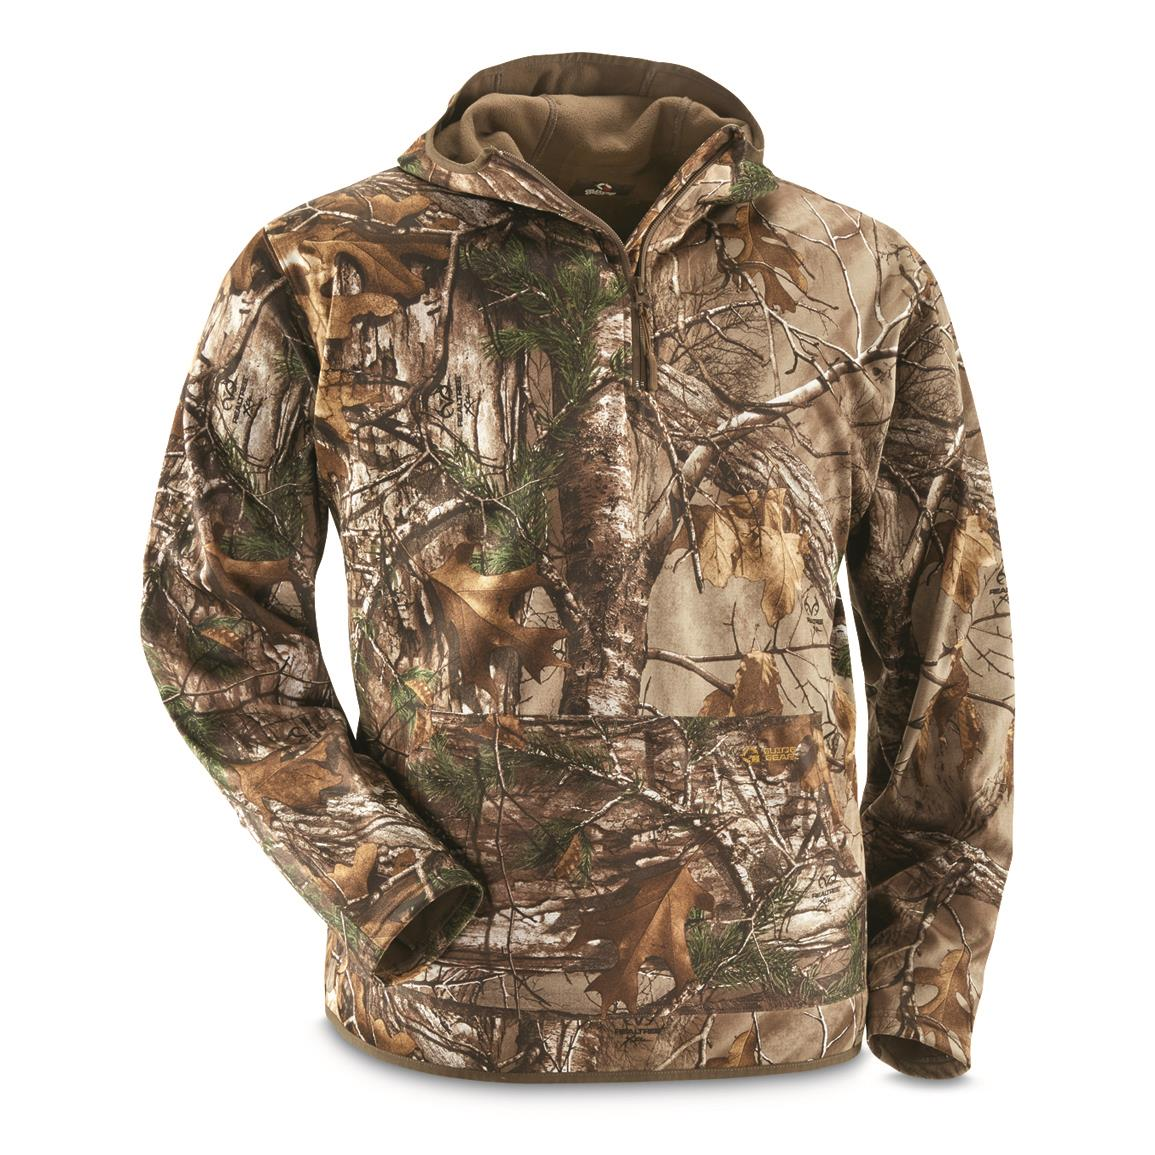 Guide Gear Men's Scent Control Quarter-Zip Hoodie, Realtree Xtra